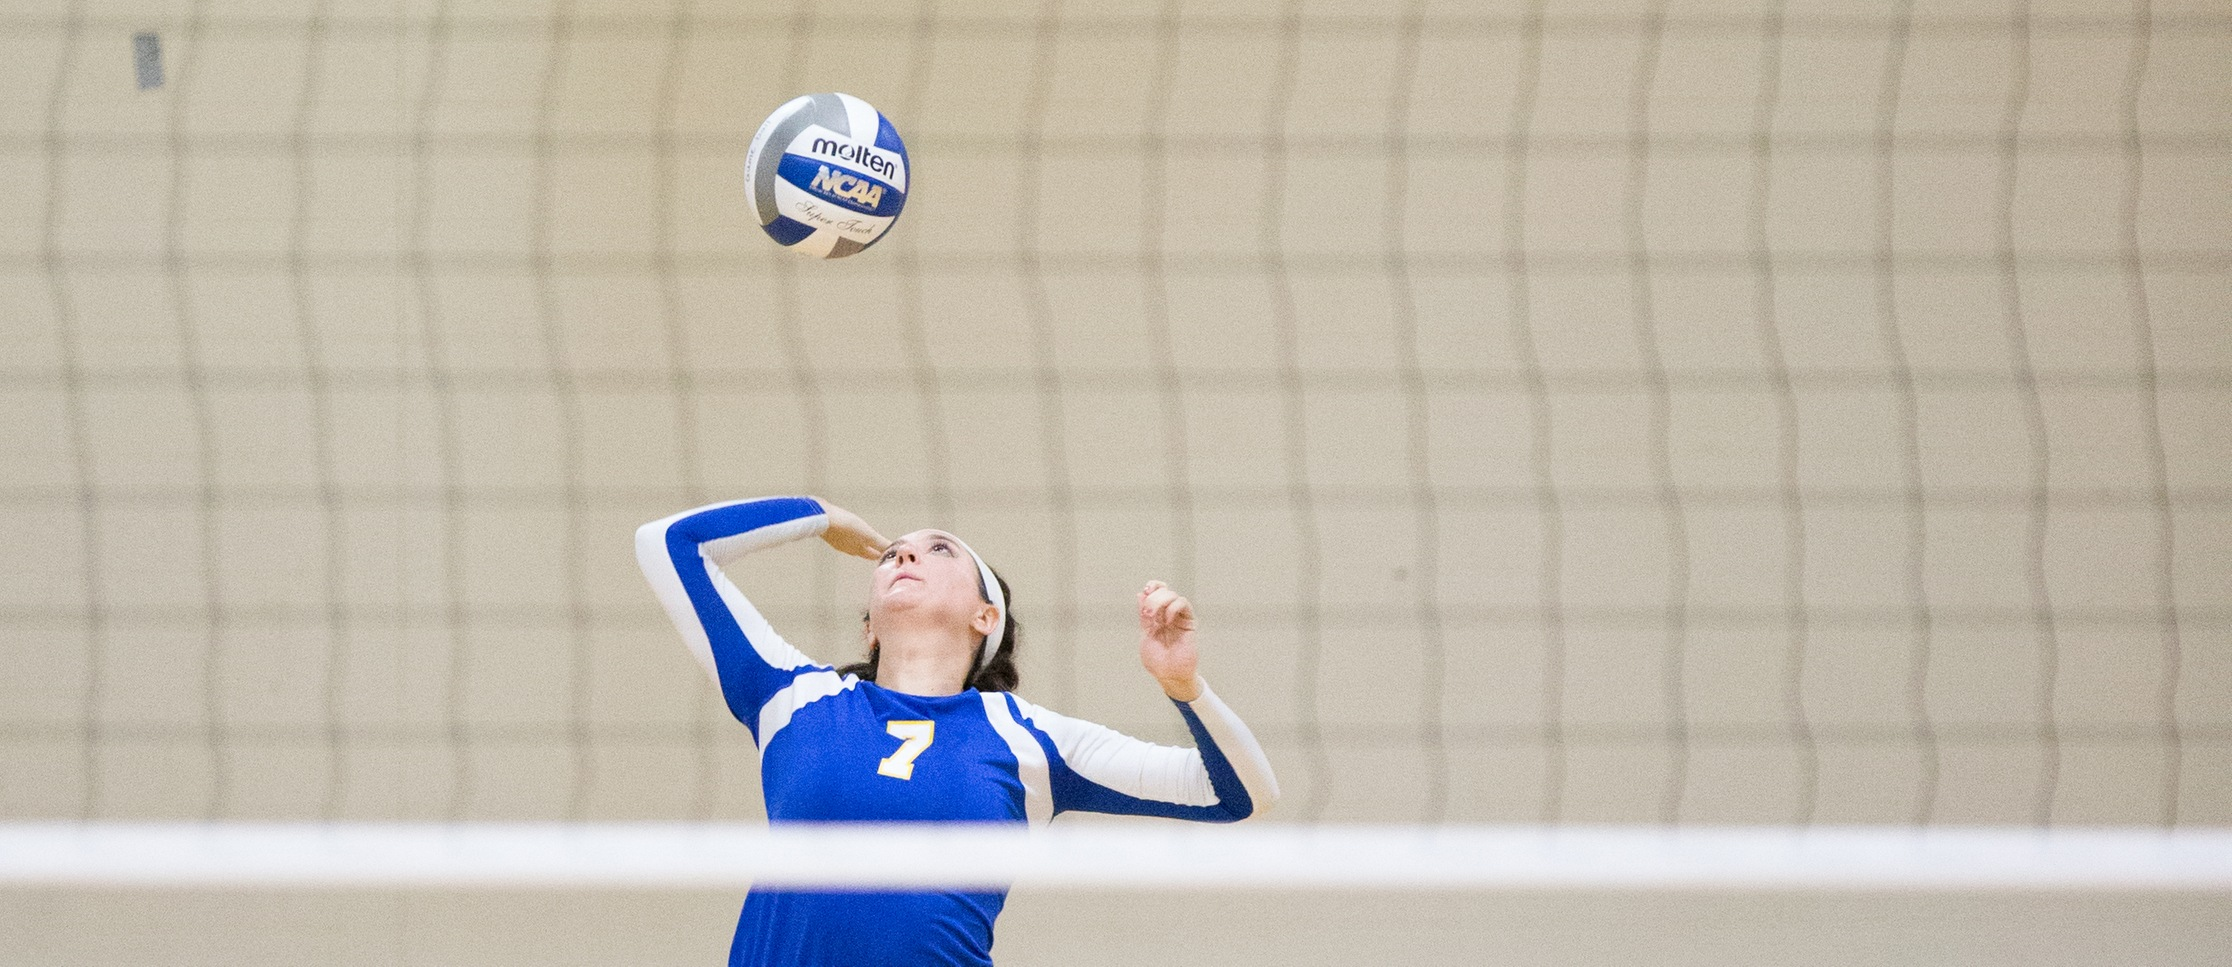 Senior Brianna Roath totaled 35 digs during Western New England's tri-match at Wheaton on Saturday. (Photo by Chris Marion)